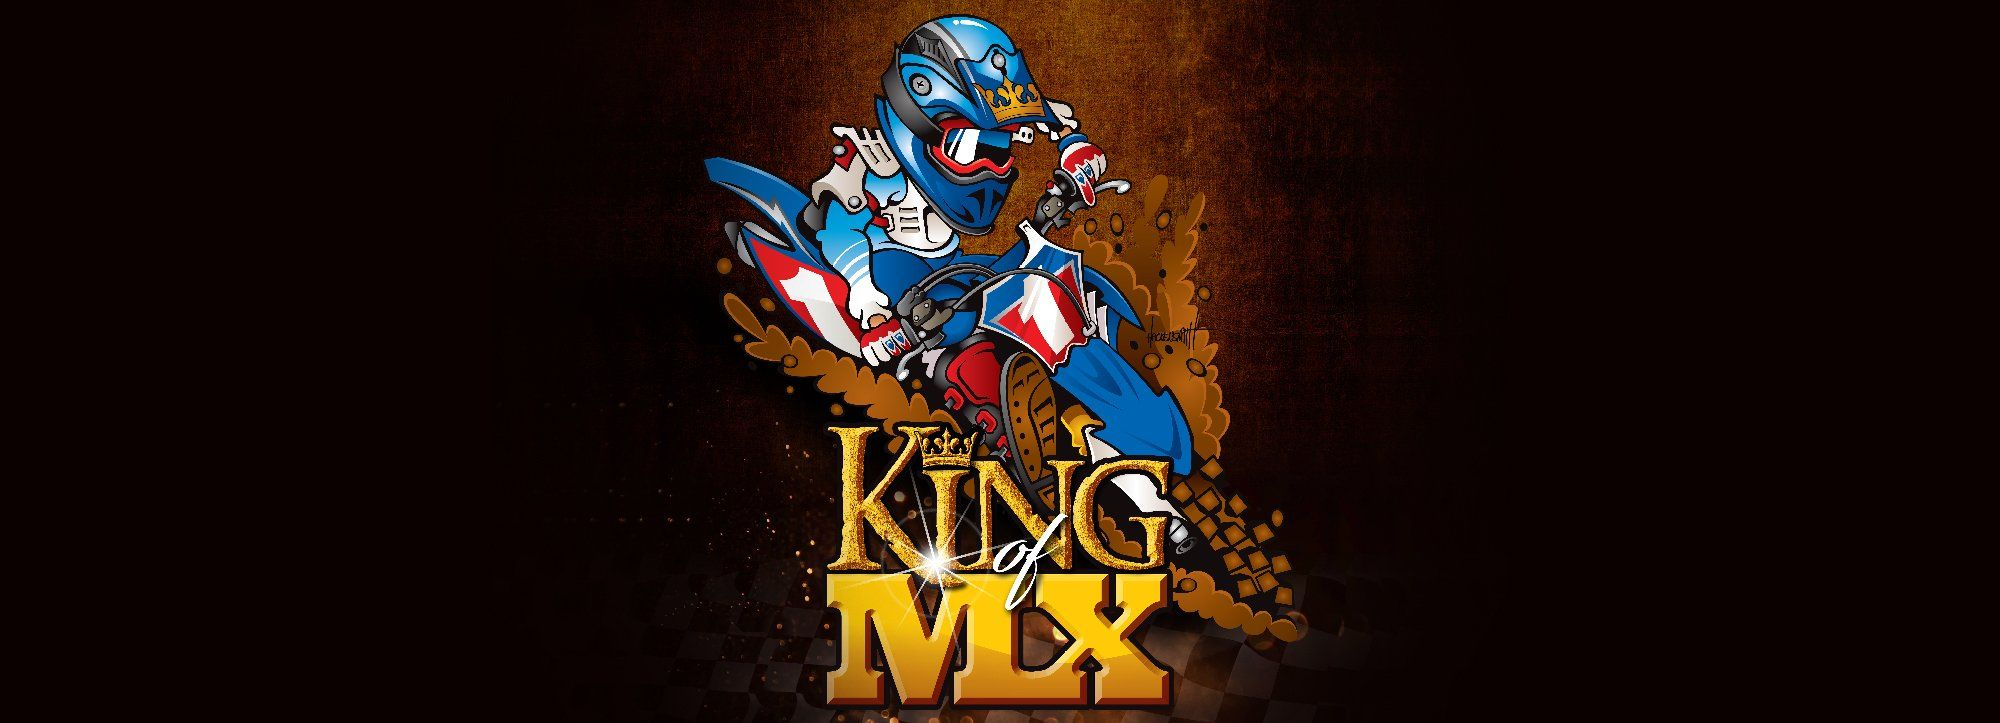 King of MX